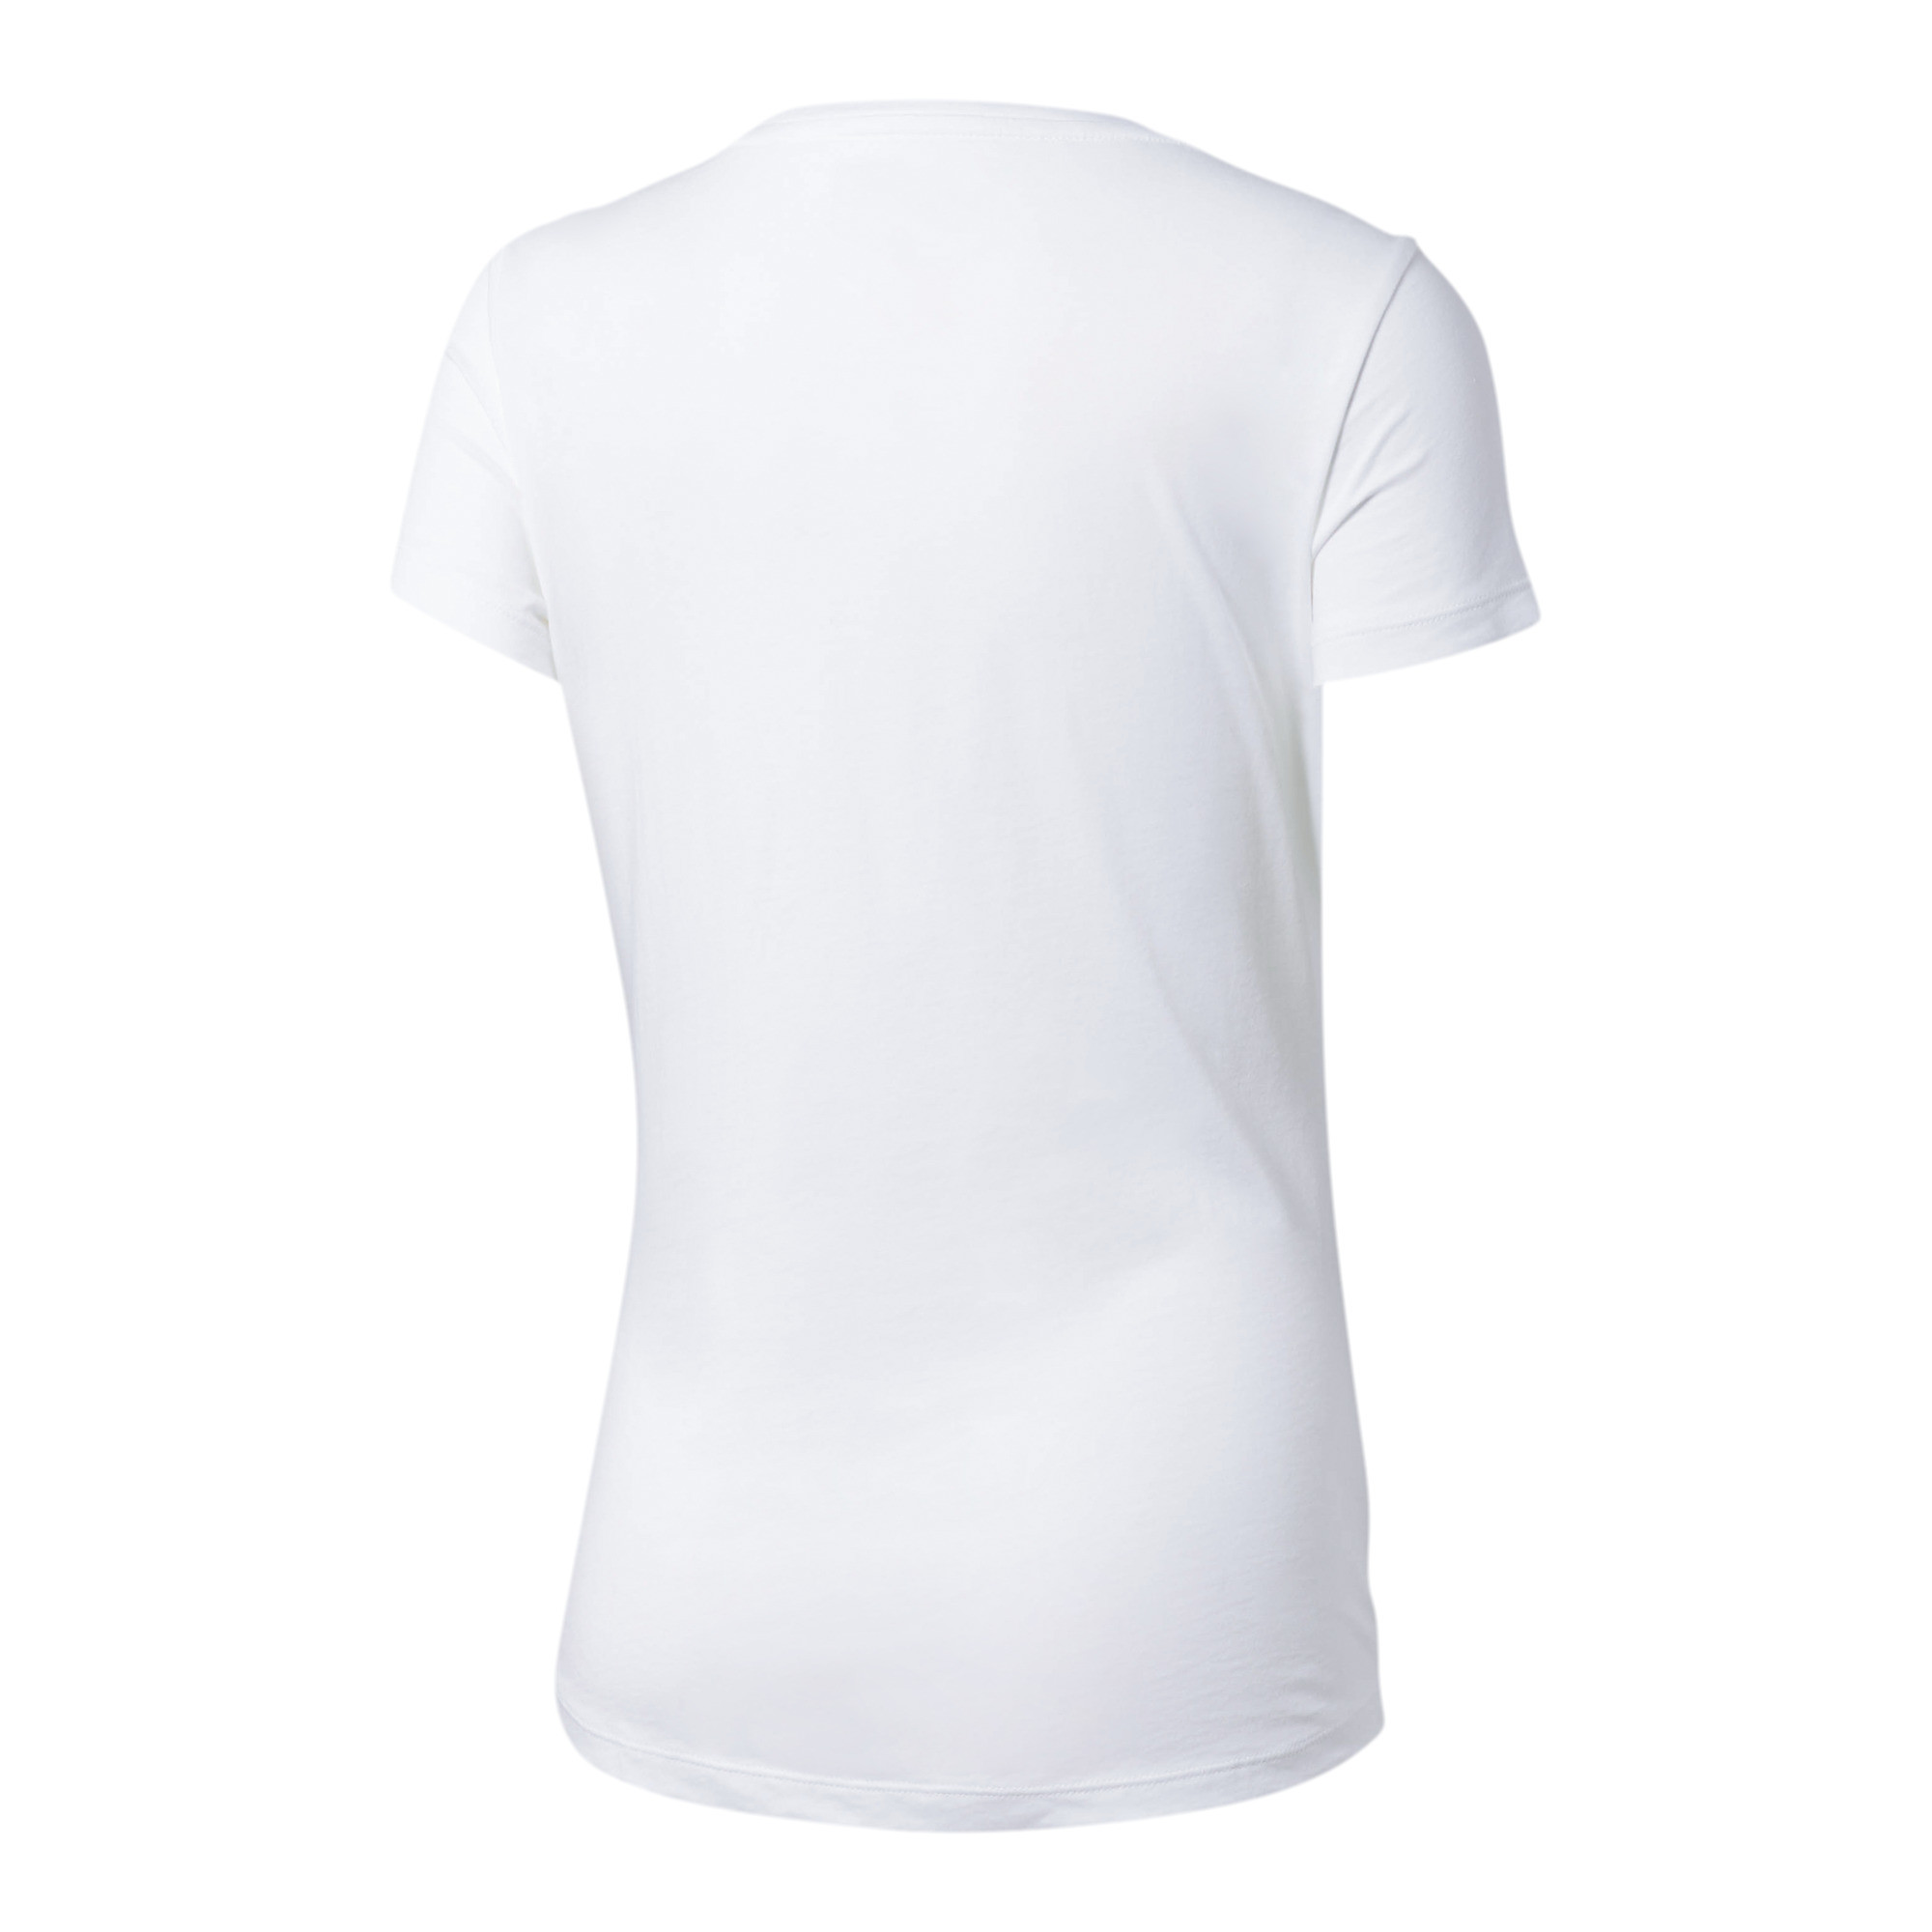 PUMA-Essentials-Women-039-s-Tee-Women-Tee-Basics thumbnail 12